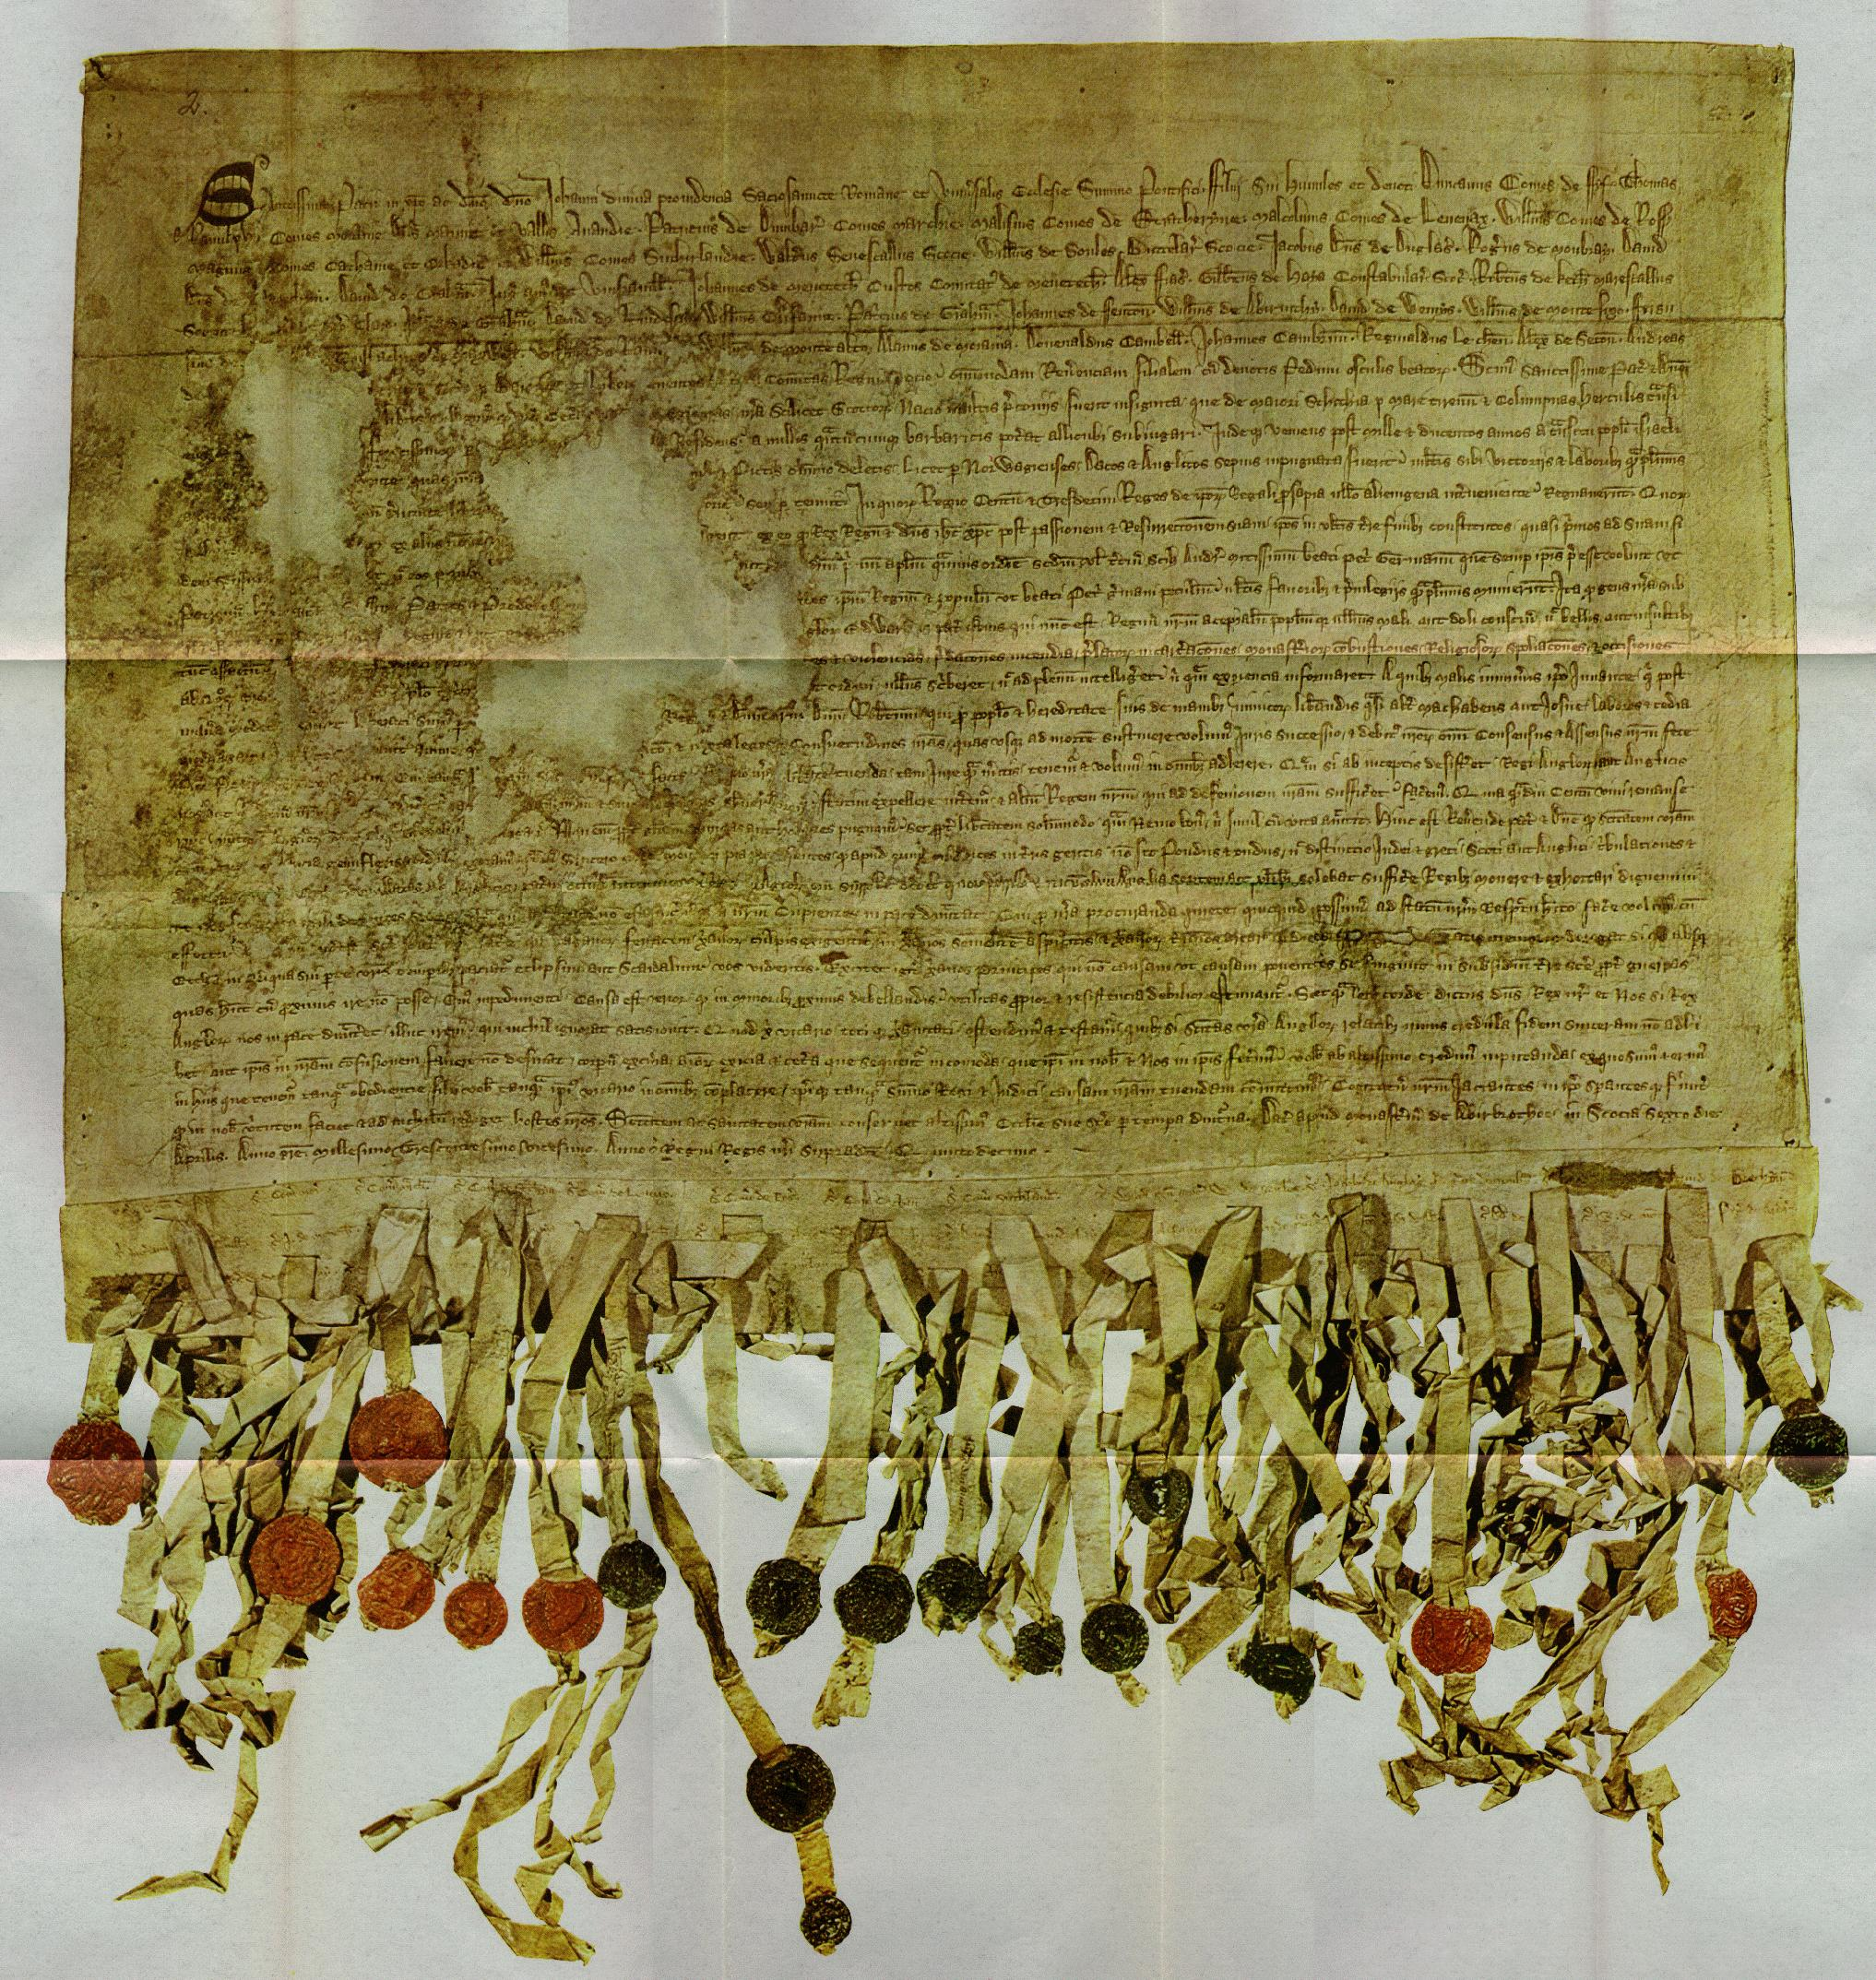 Declaration of Arbroath - Wikipedia